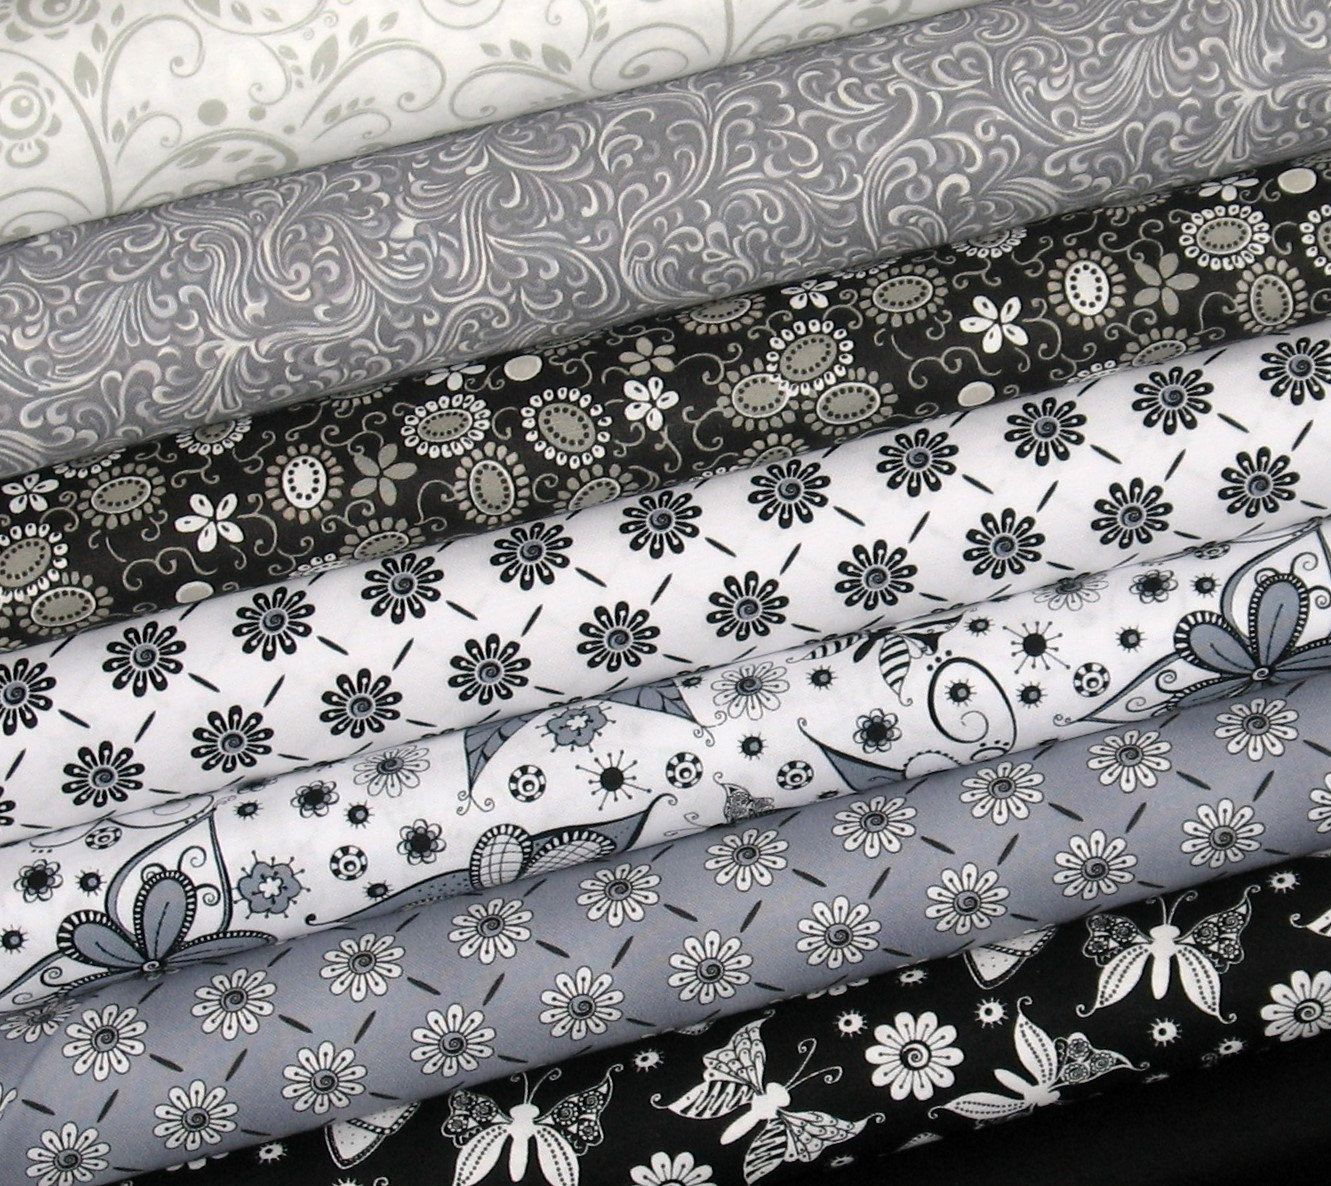 Weekly Special - Black, White and Gray Cotton Quilt Fabric Bundle 55% Off Retail! Eight Piece Fat Quarter Bundle by fabric406 on Etsy